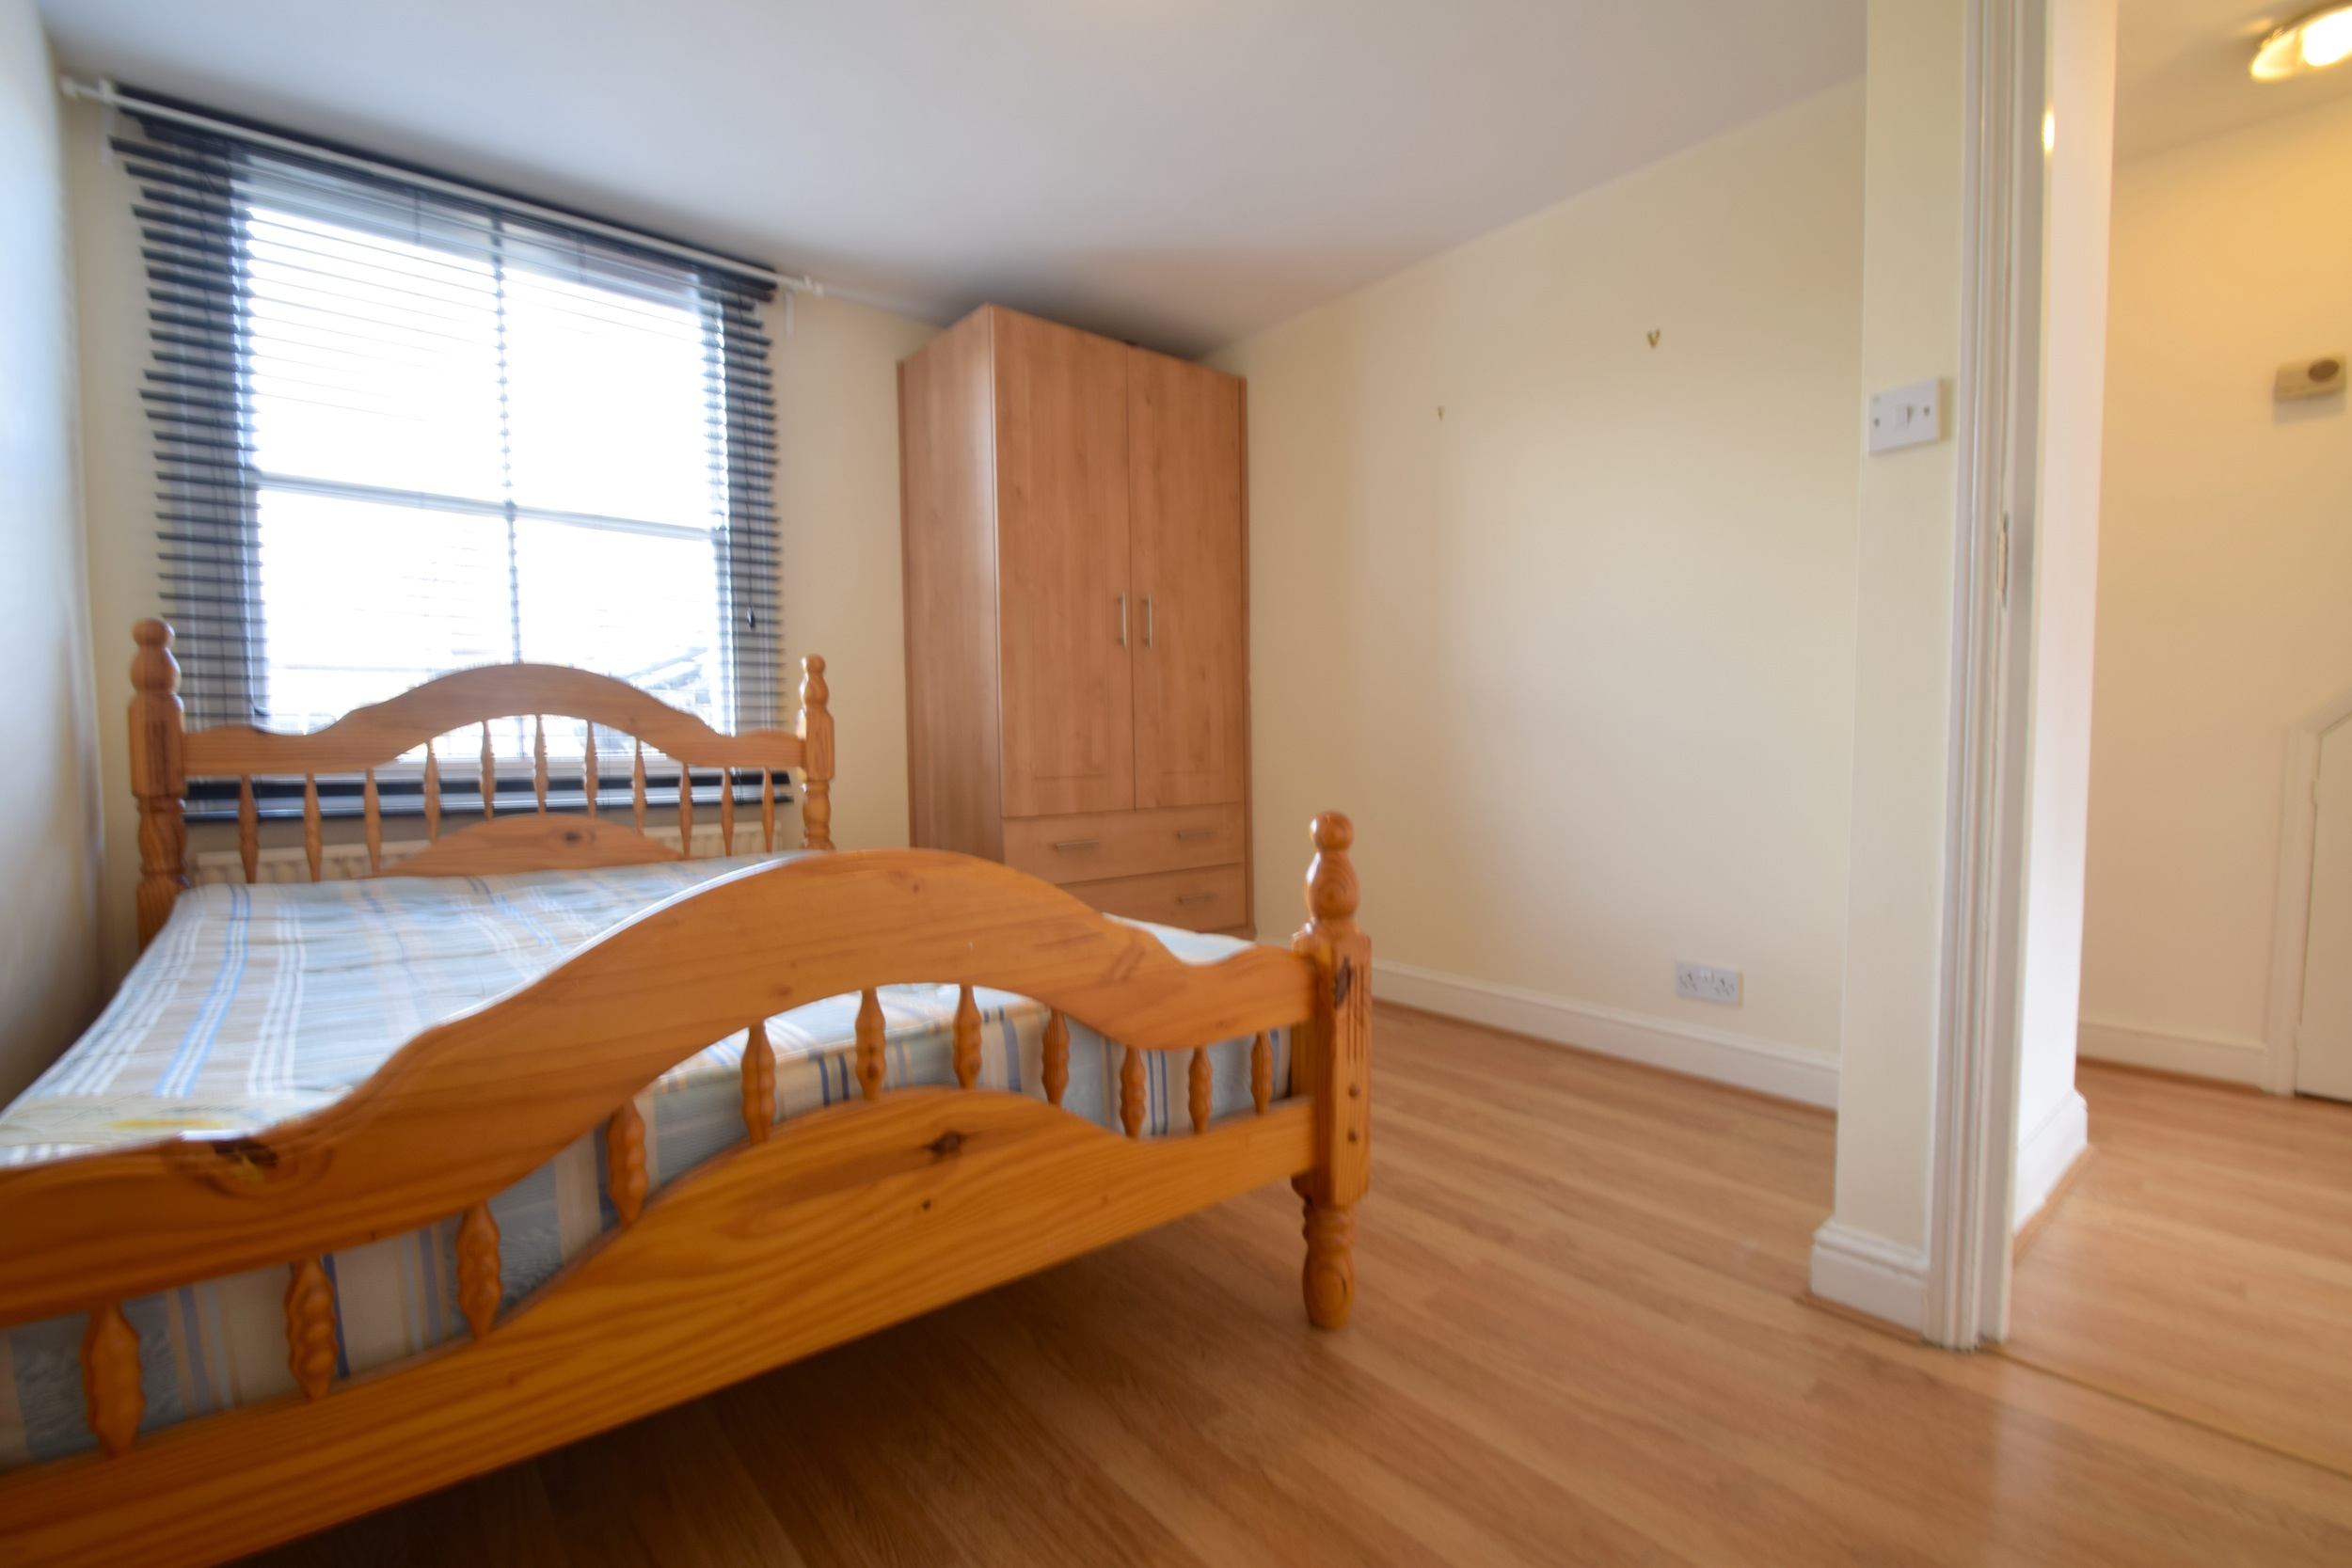 4 bed flat apartment maisonette to rent rita road 4 bedroom maisonette